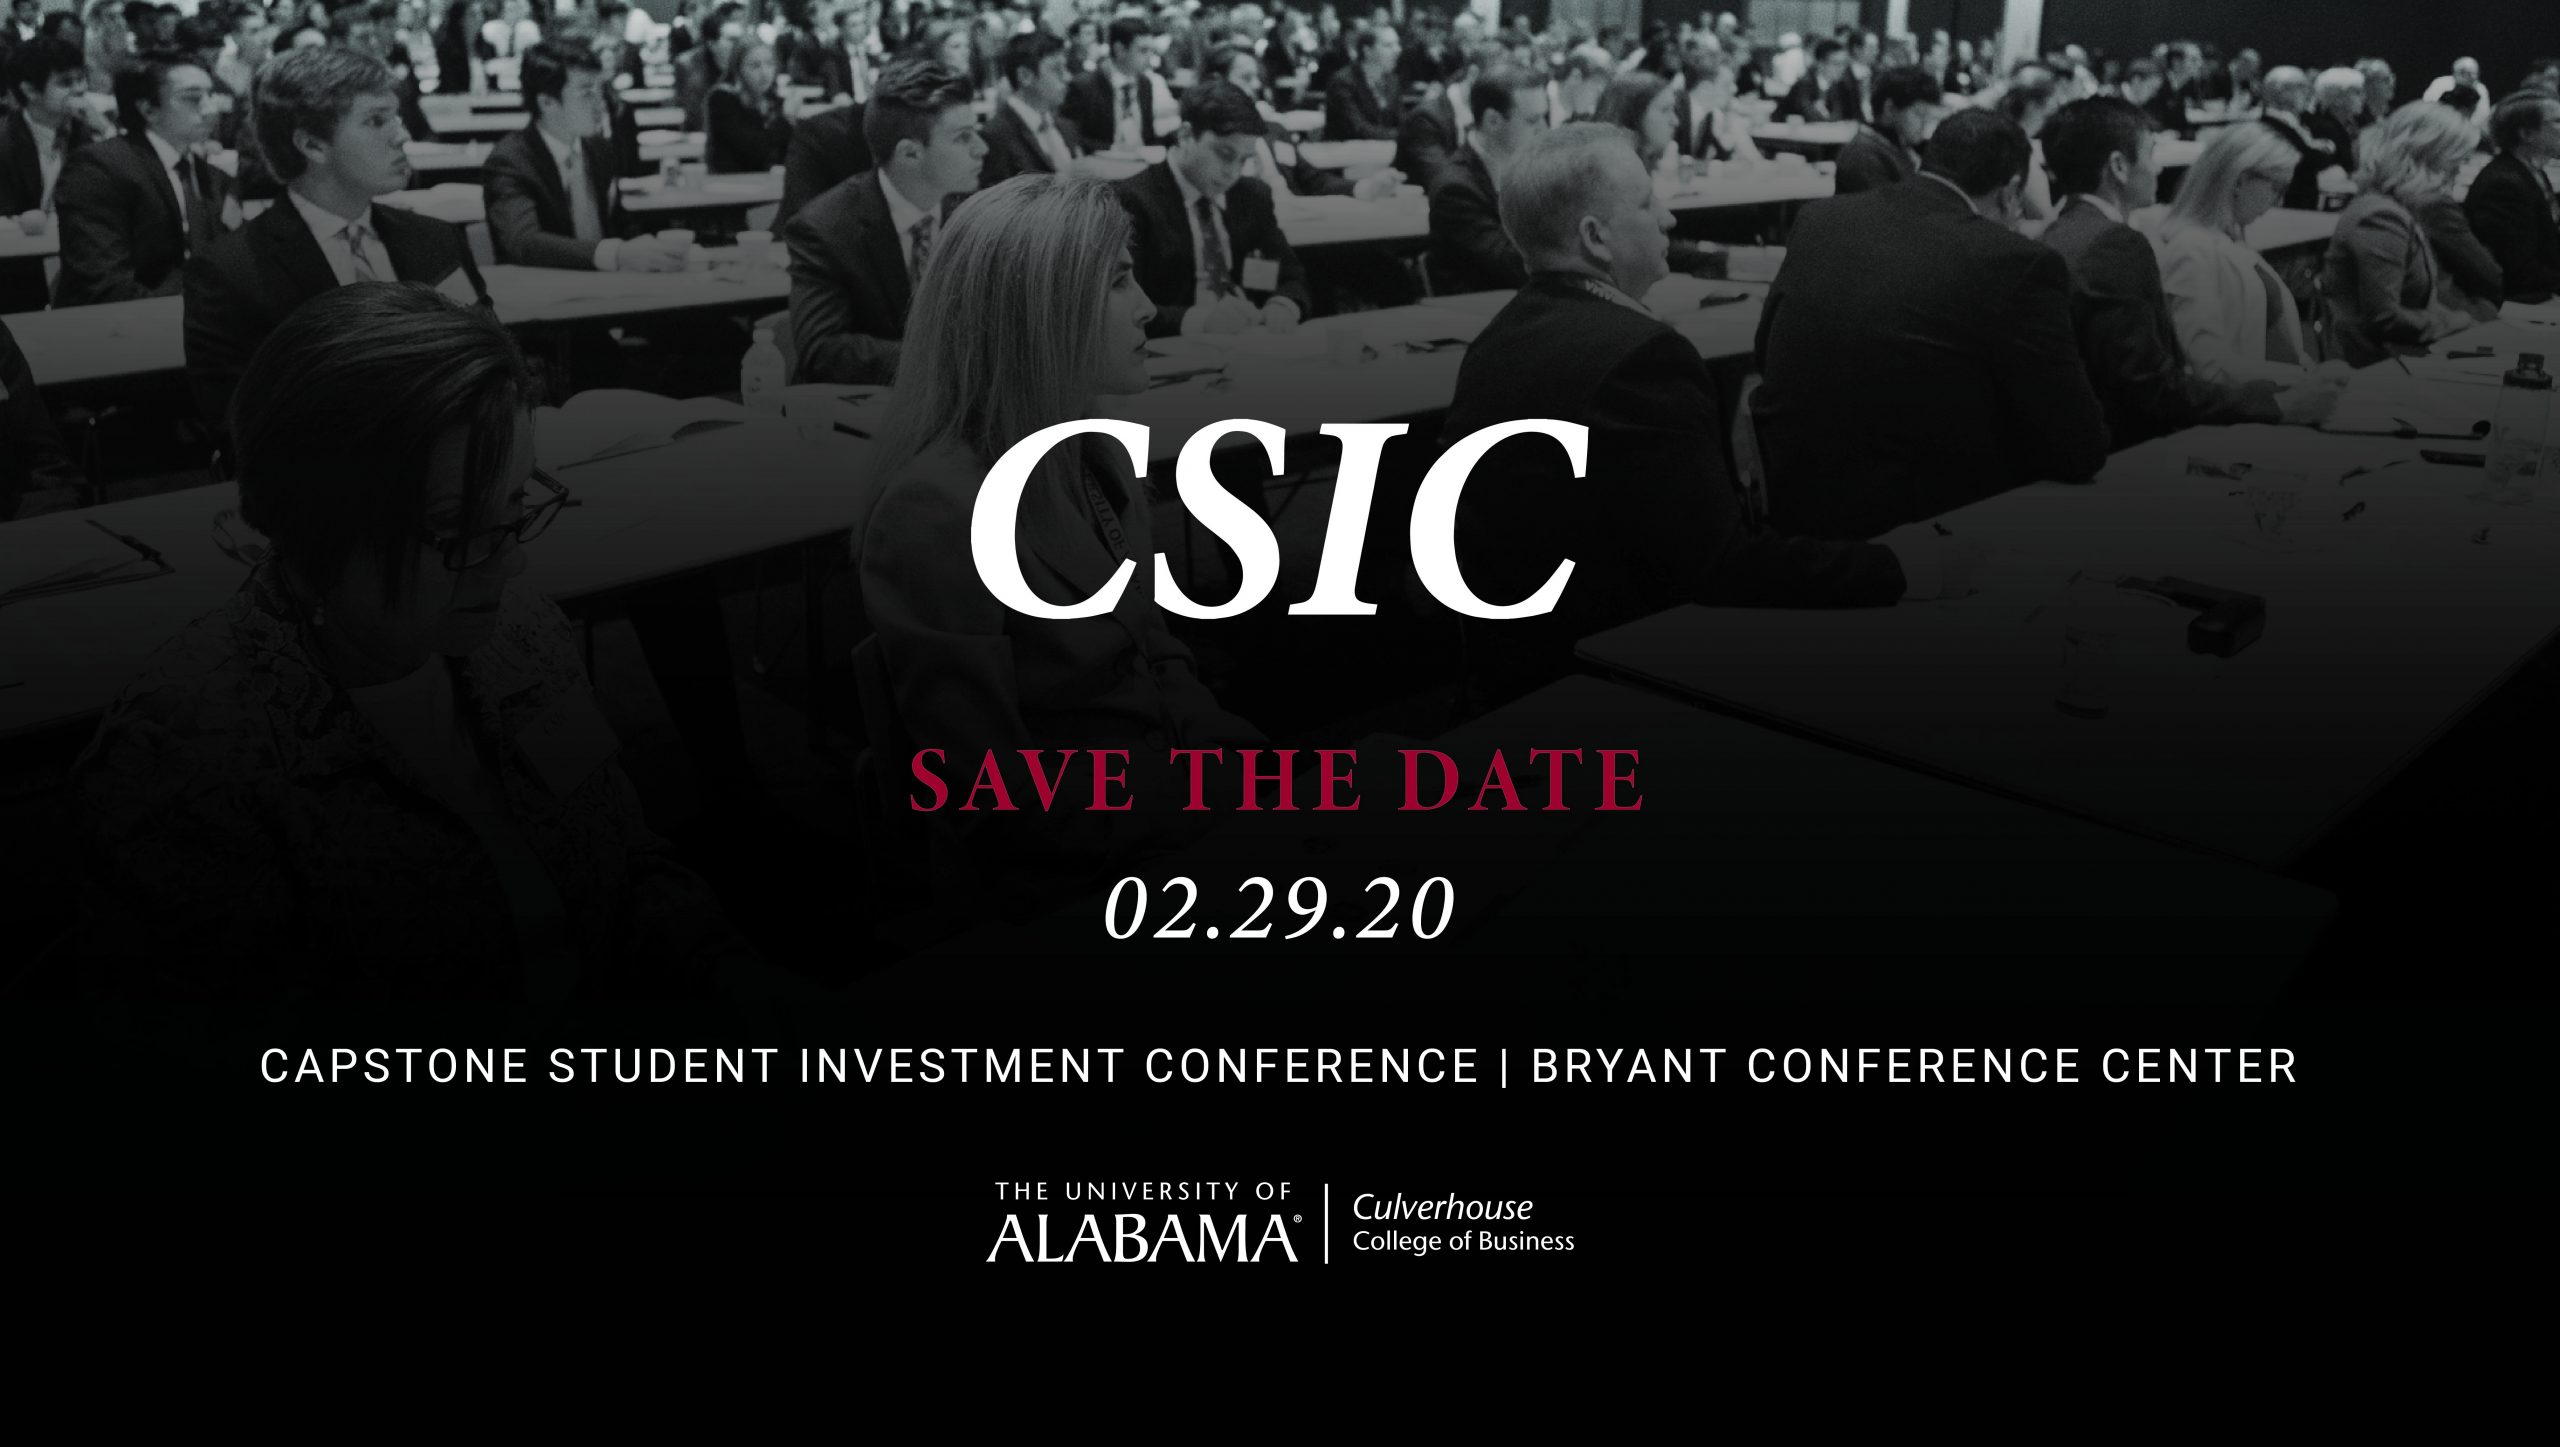 CSIC Save the Date